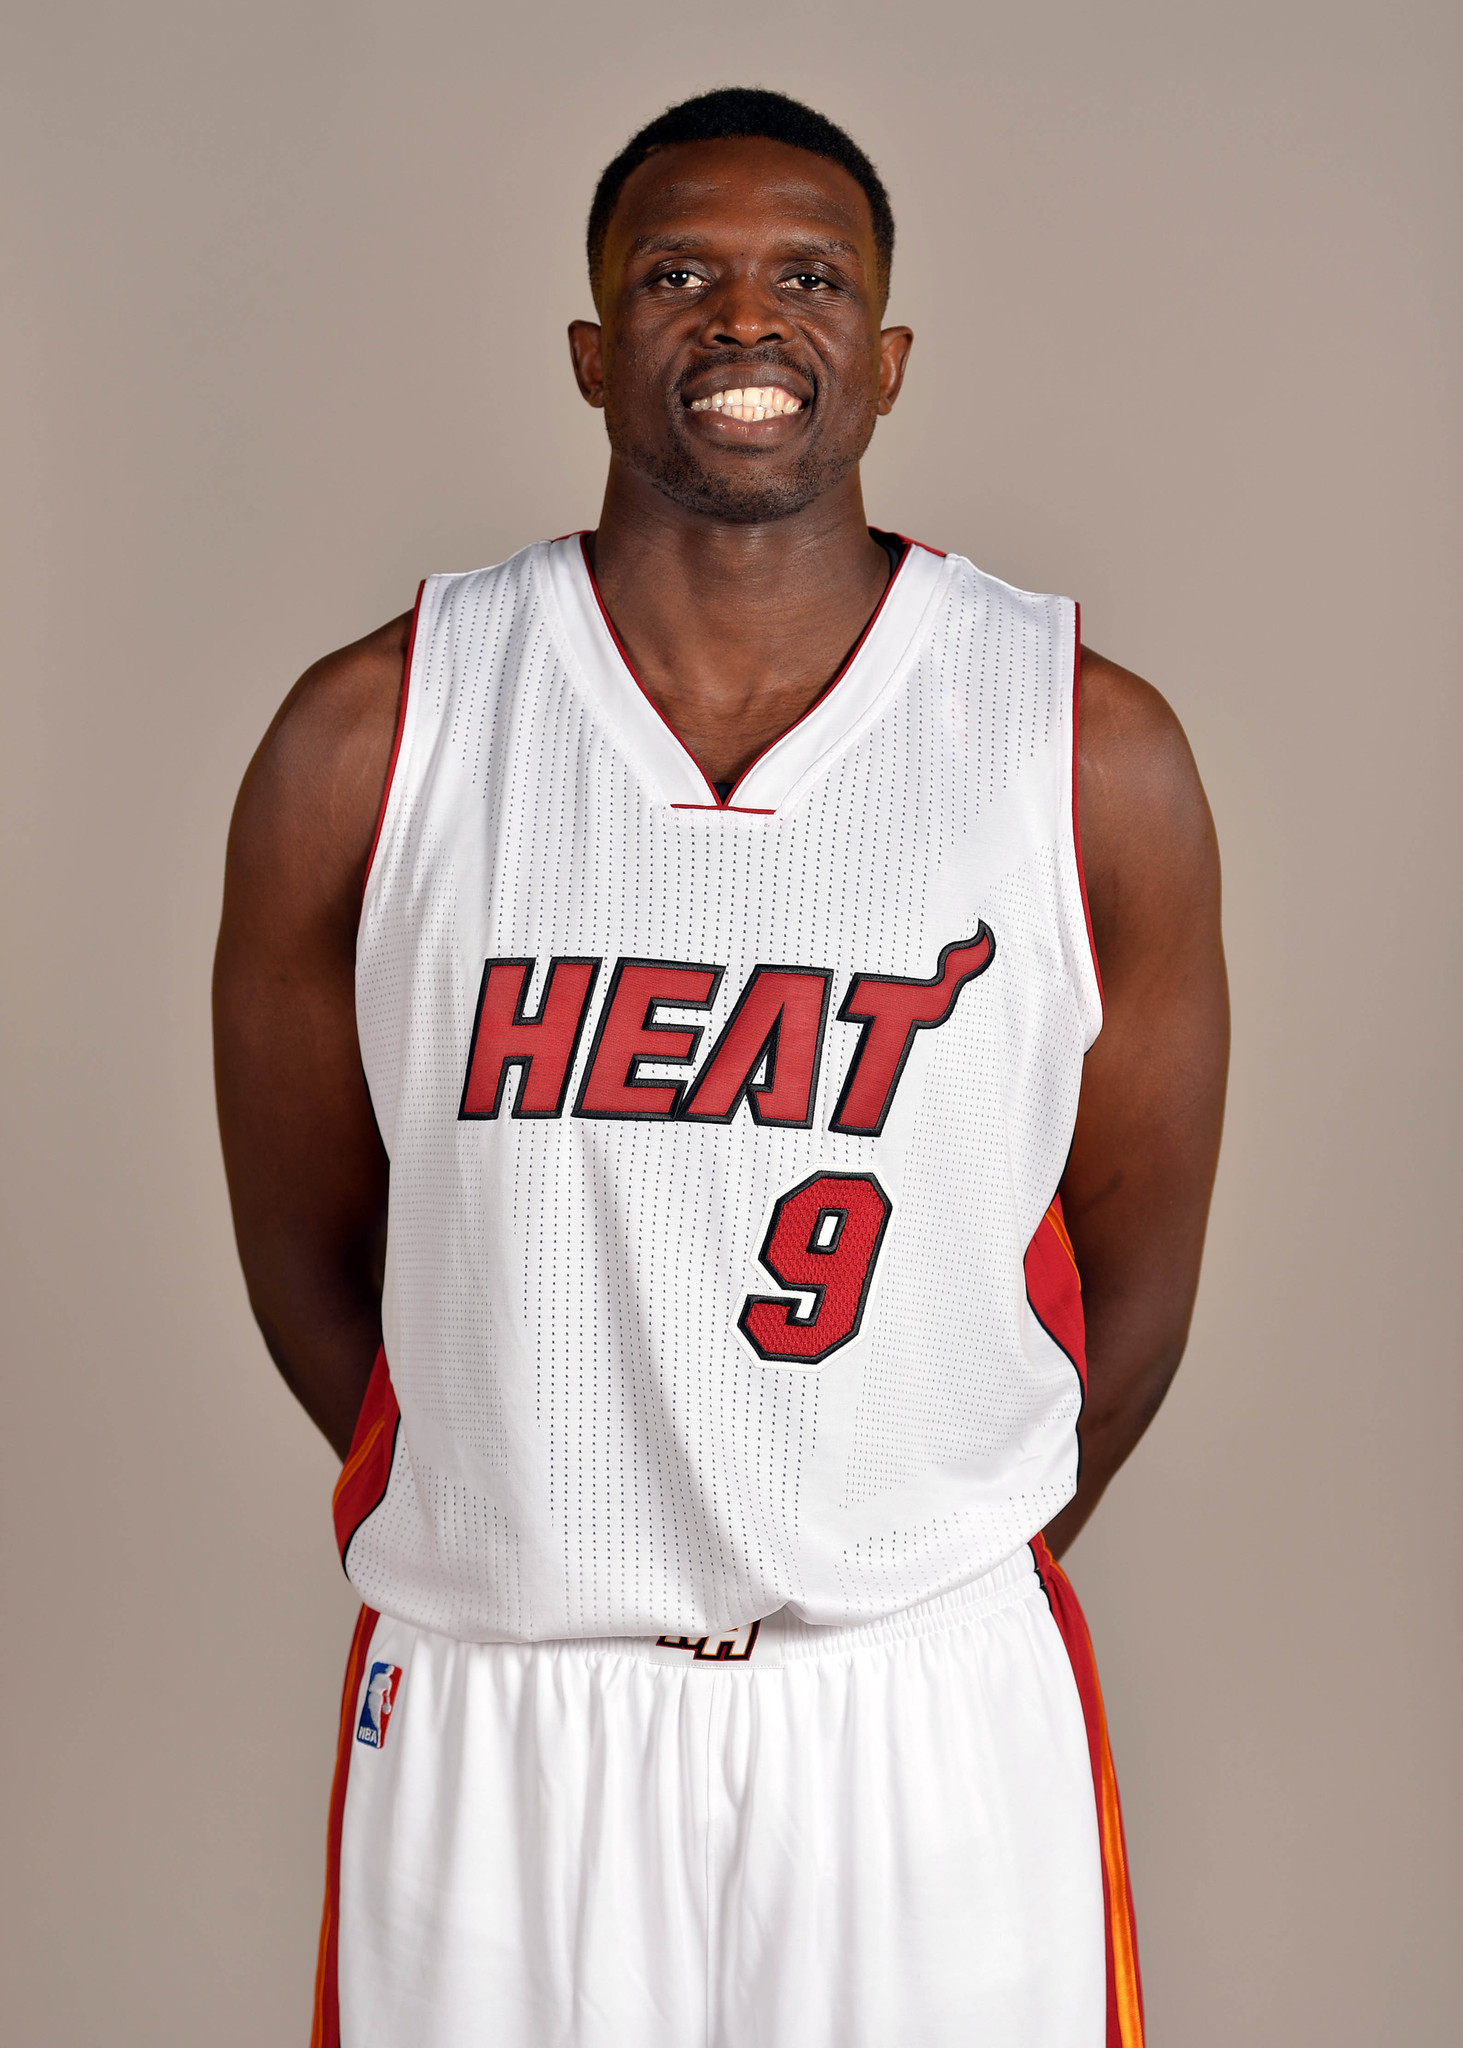 Miami Heat Luol Deng moves past controversy involving Hawks